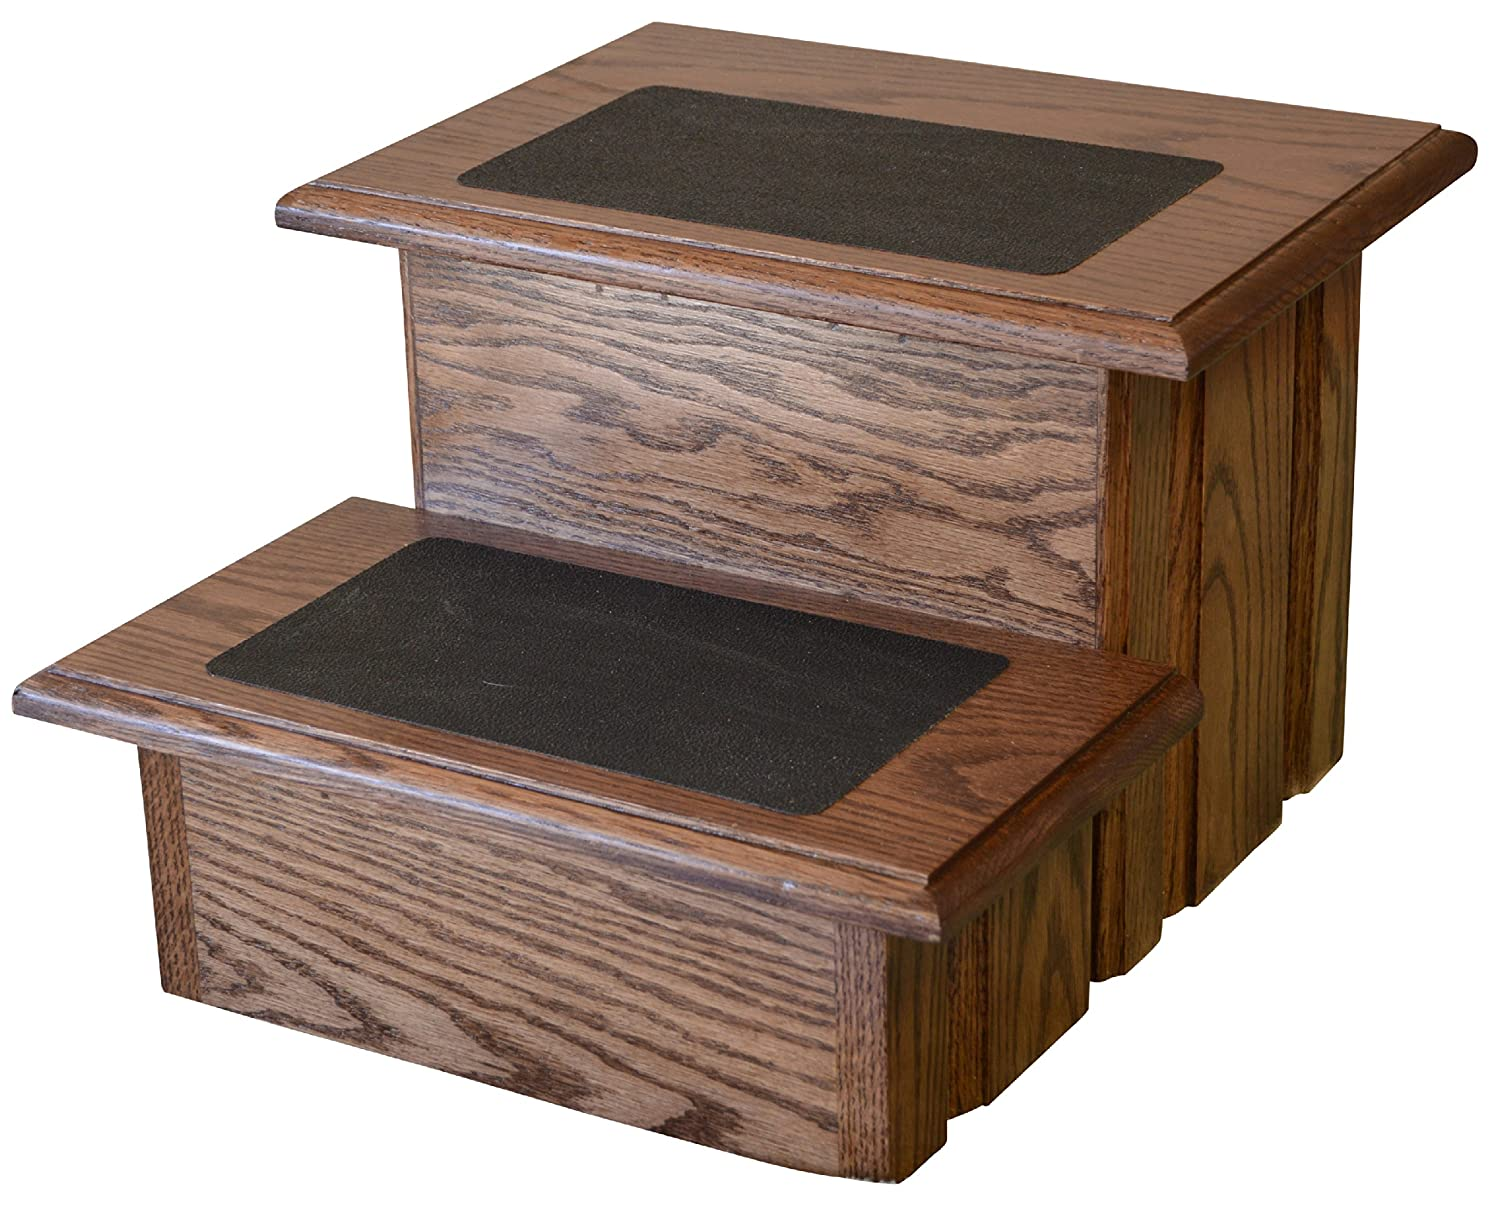 Deep Walnut Finished Solid Oak Step Stool With Solid Tread 11 ½ Tall Premier Pet Steps SS2sOWAL